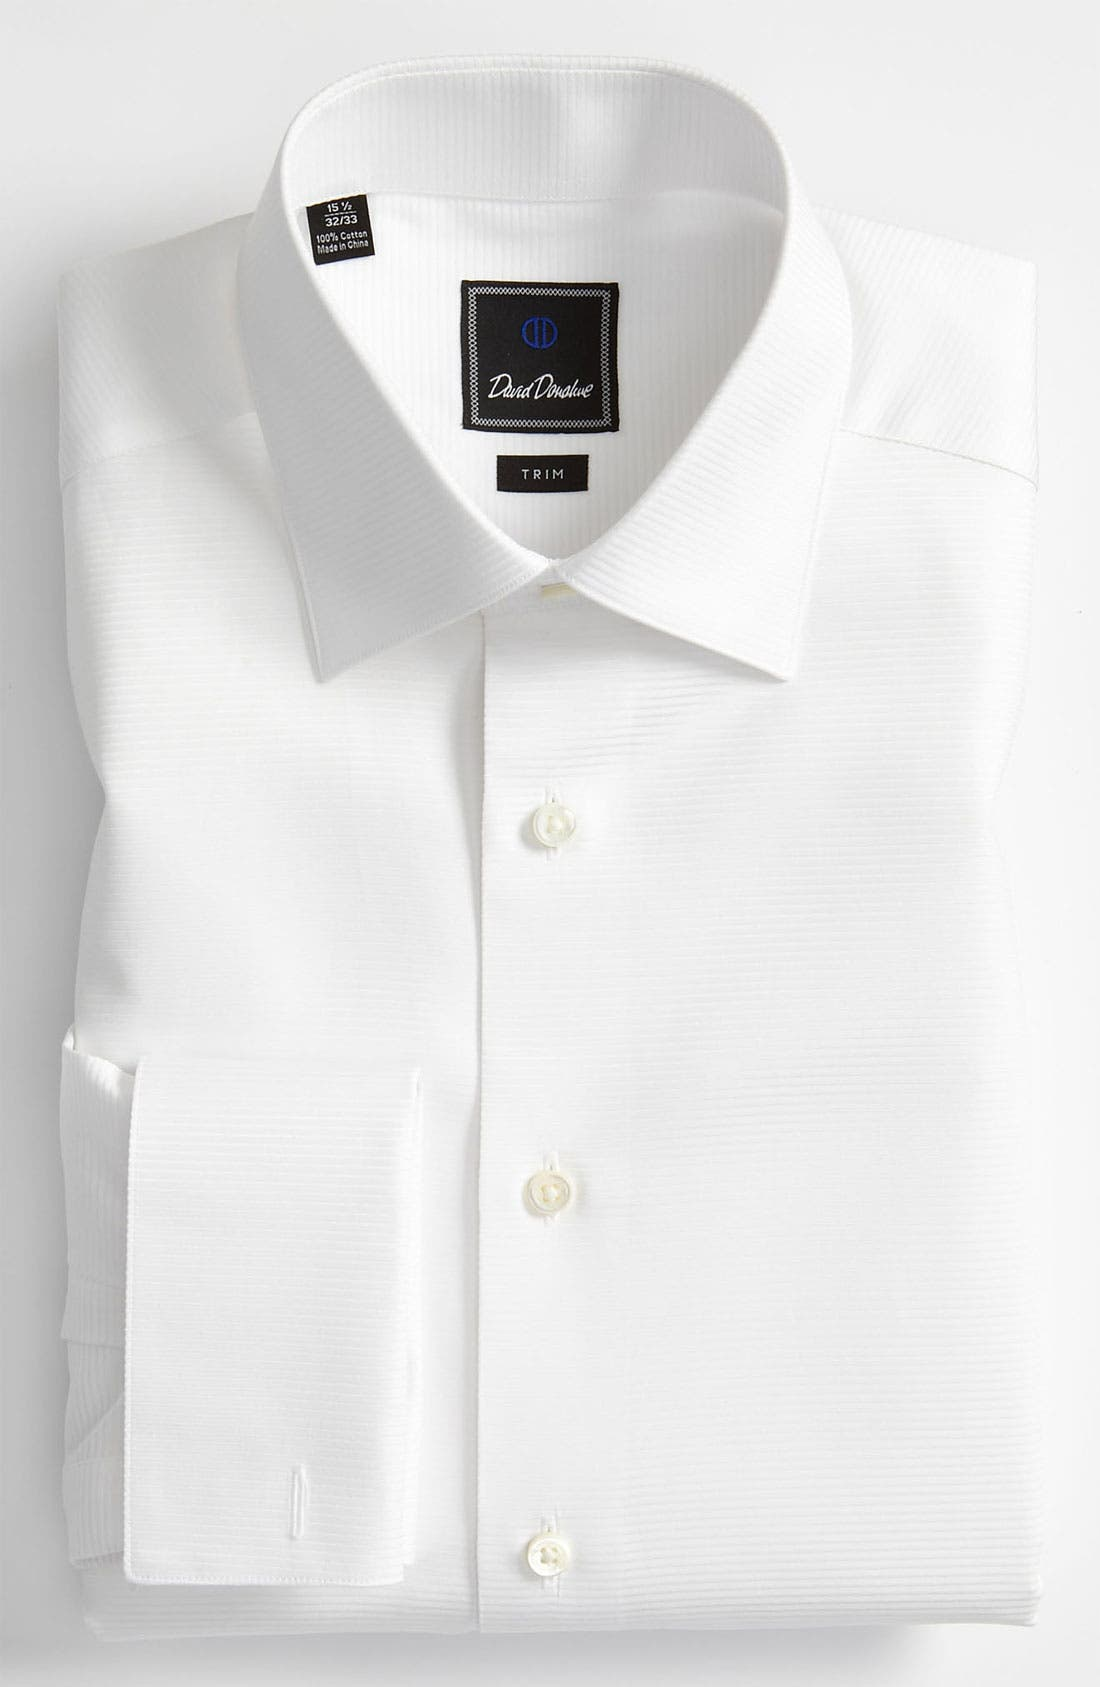 Alternate Image 1 Selected - David Donahue Trim Fit Twill French Cuff Tuxedo Shirt